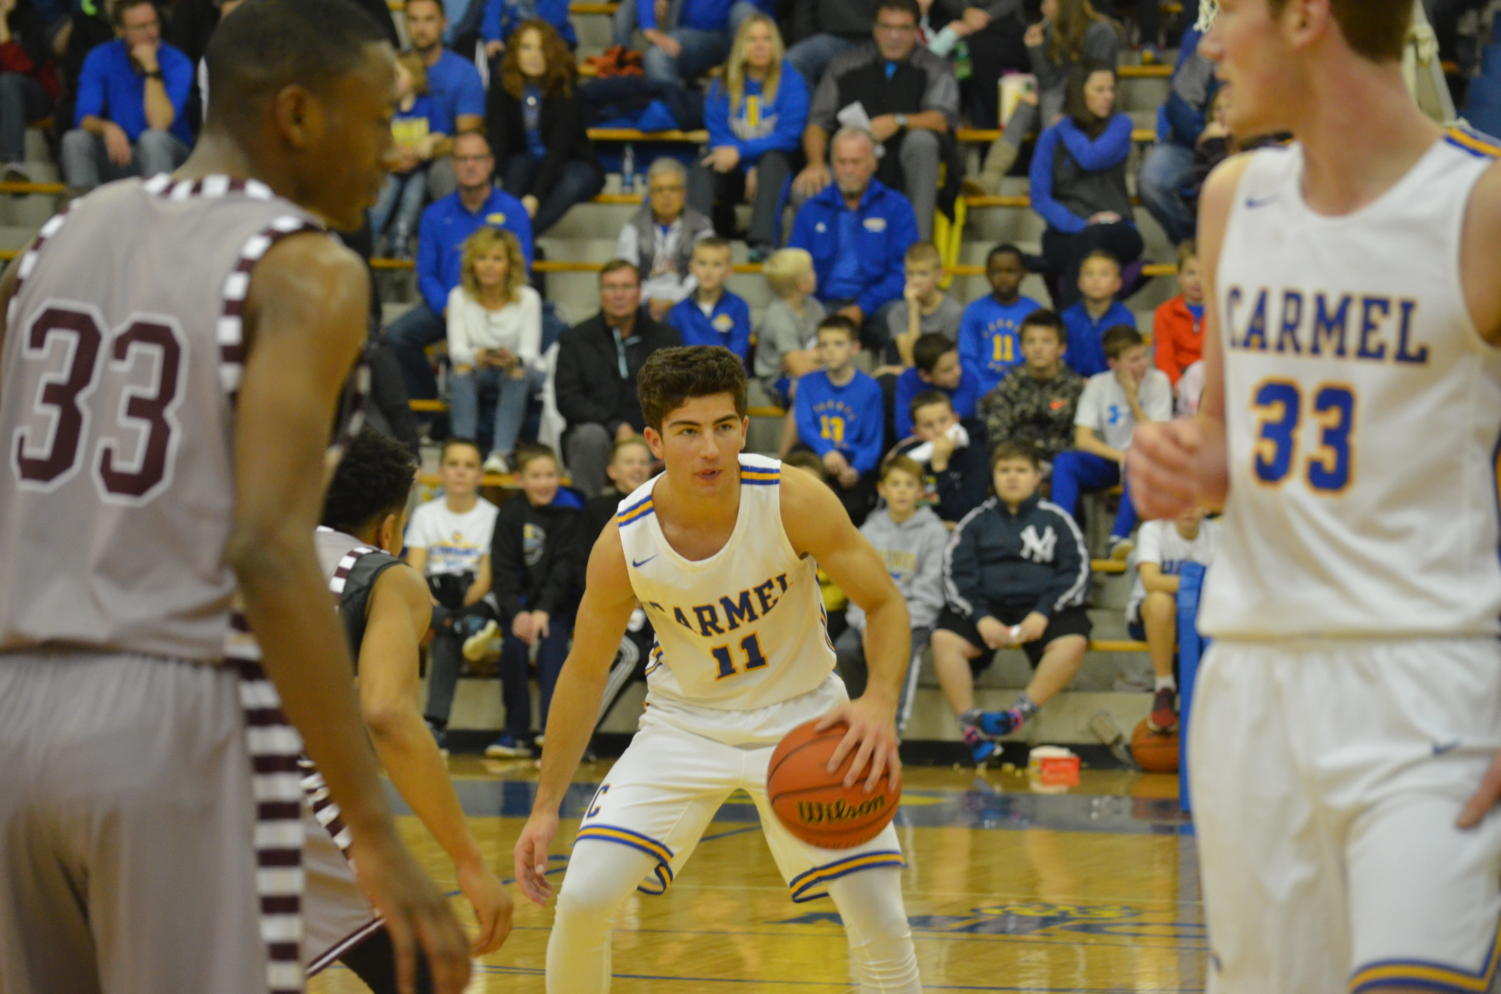 Luke Heady, men's basketball player and senior, looks to pass to a teammate. The basketball team prepares to play Hamilton Southeastern High School on Feb.8 at CHS.